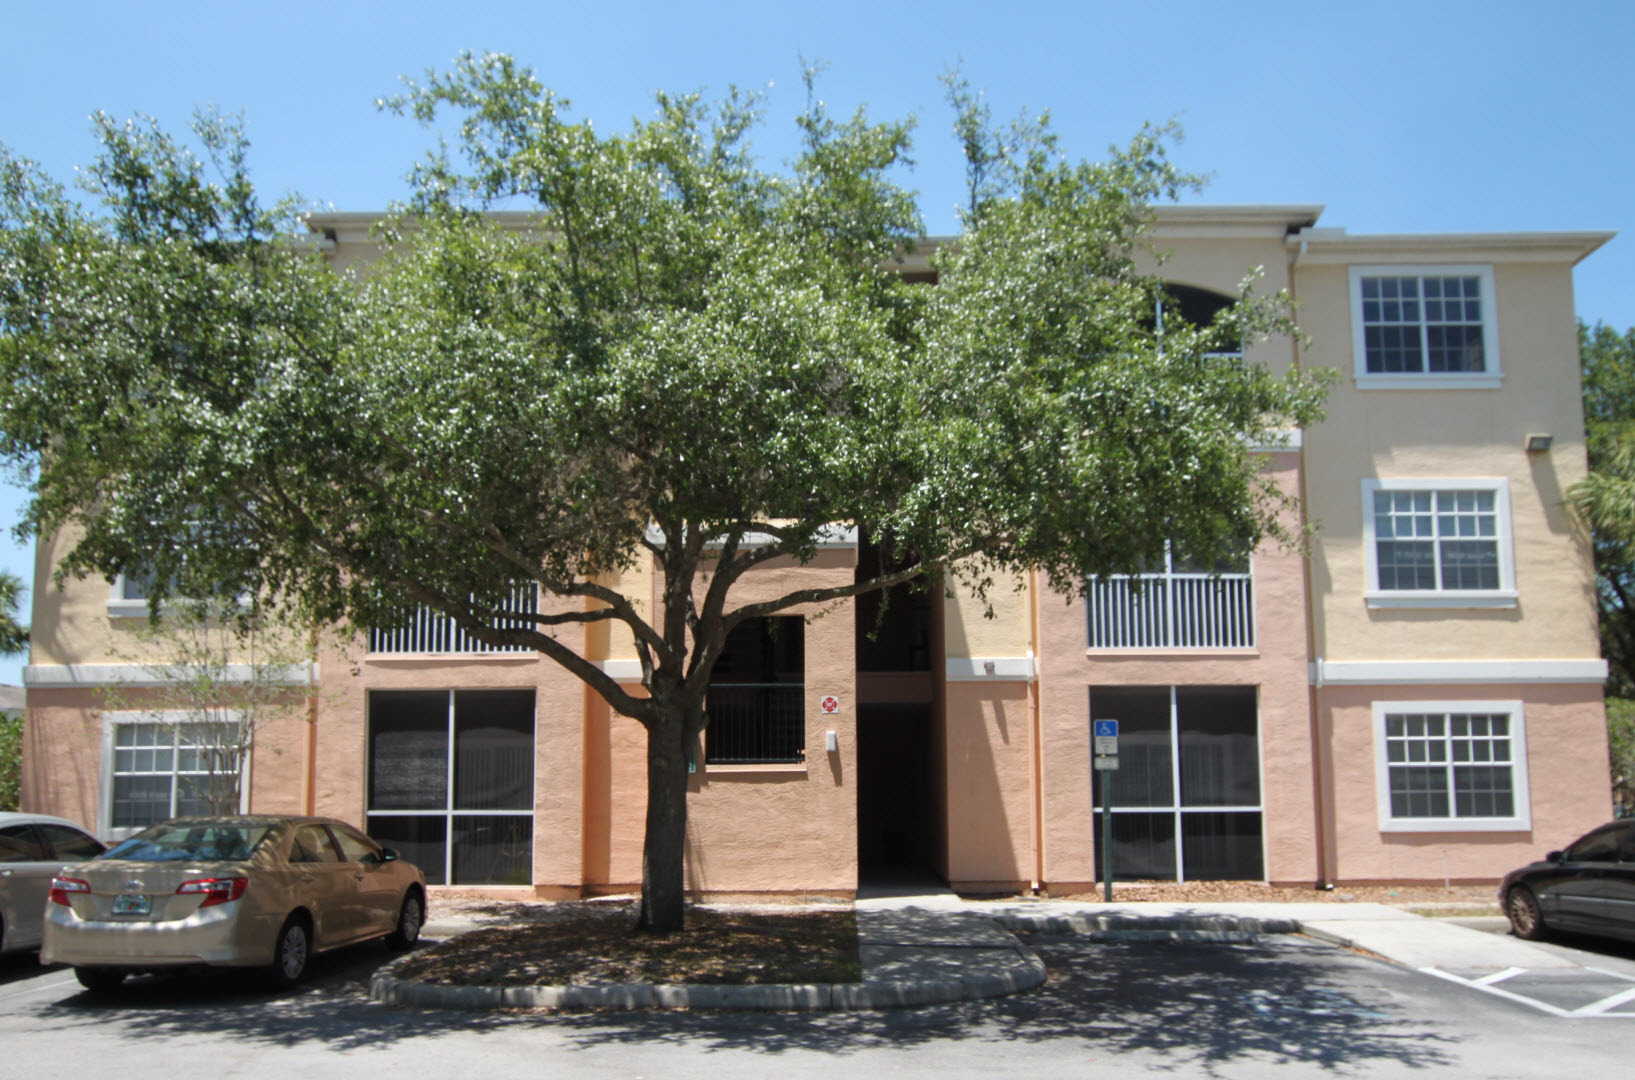 Apartments and houses for rent near me in 33637 for 13305 tampa oaks blvd temple terrace florida 33637